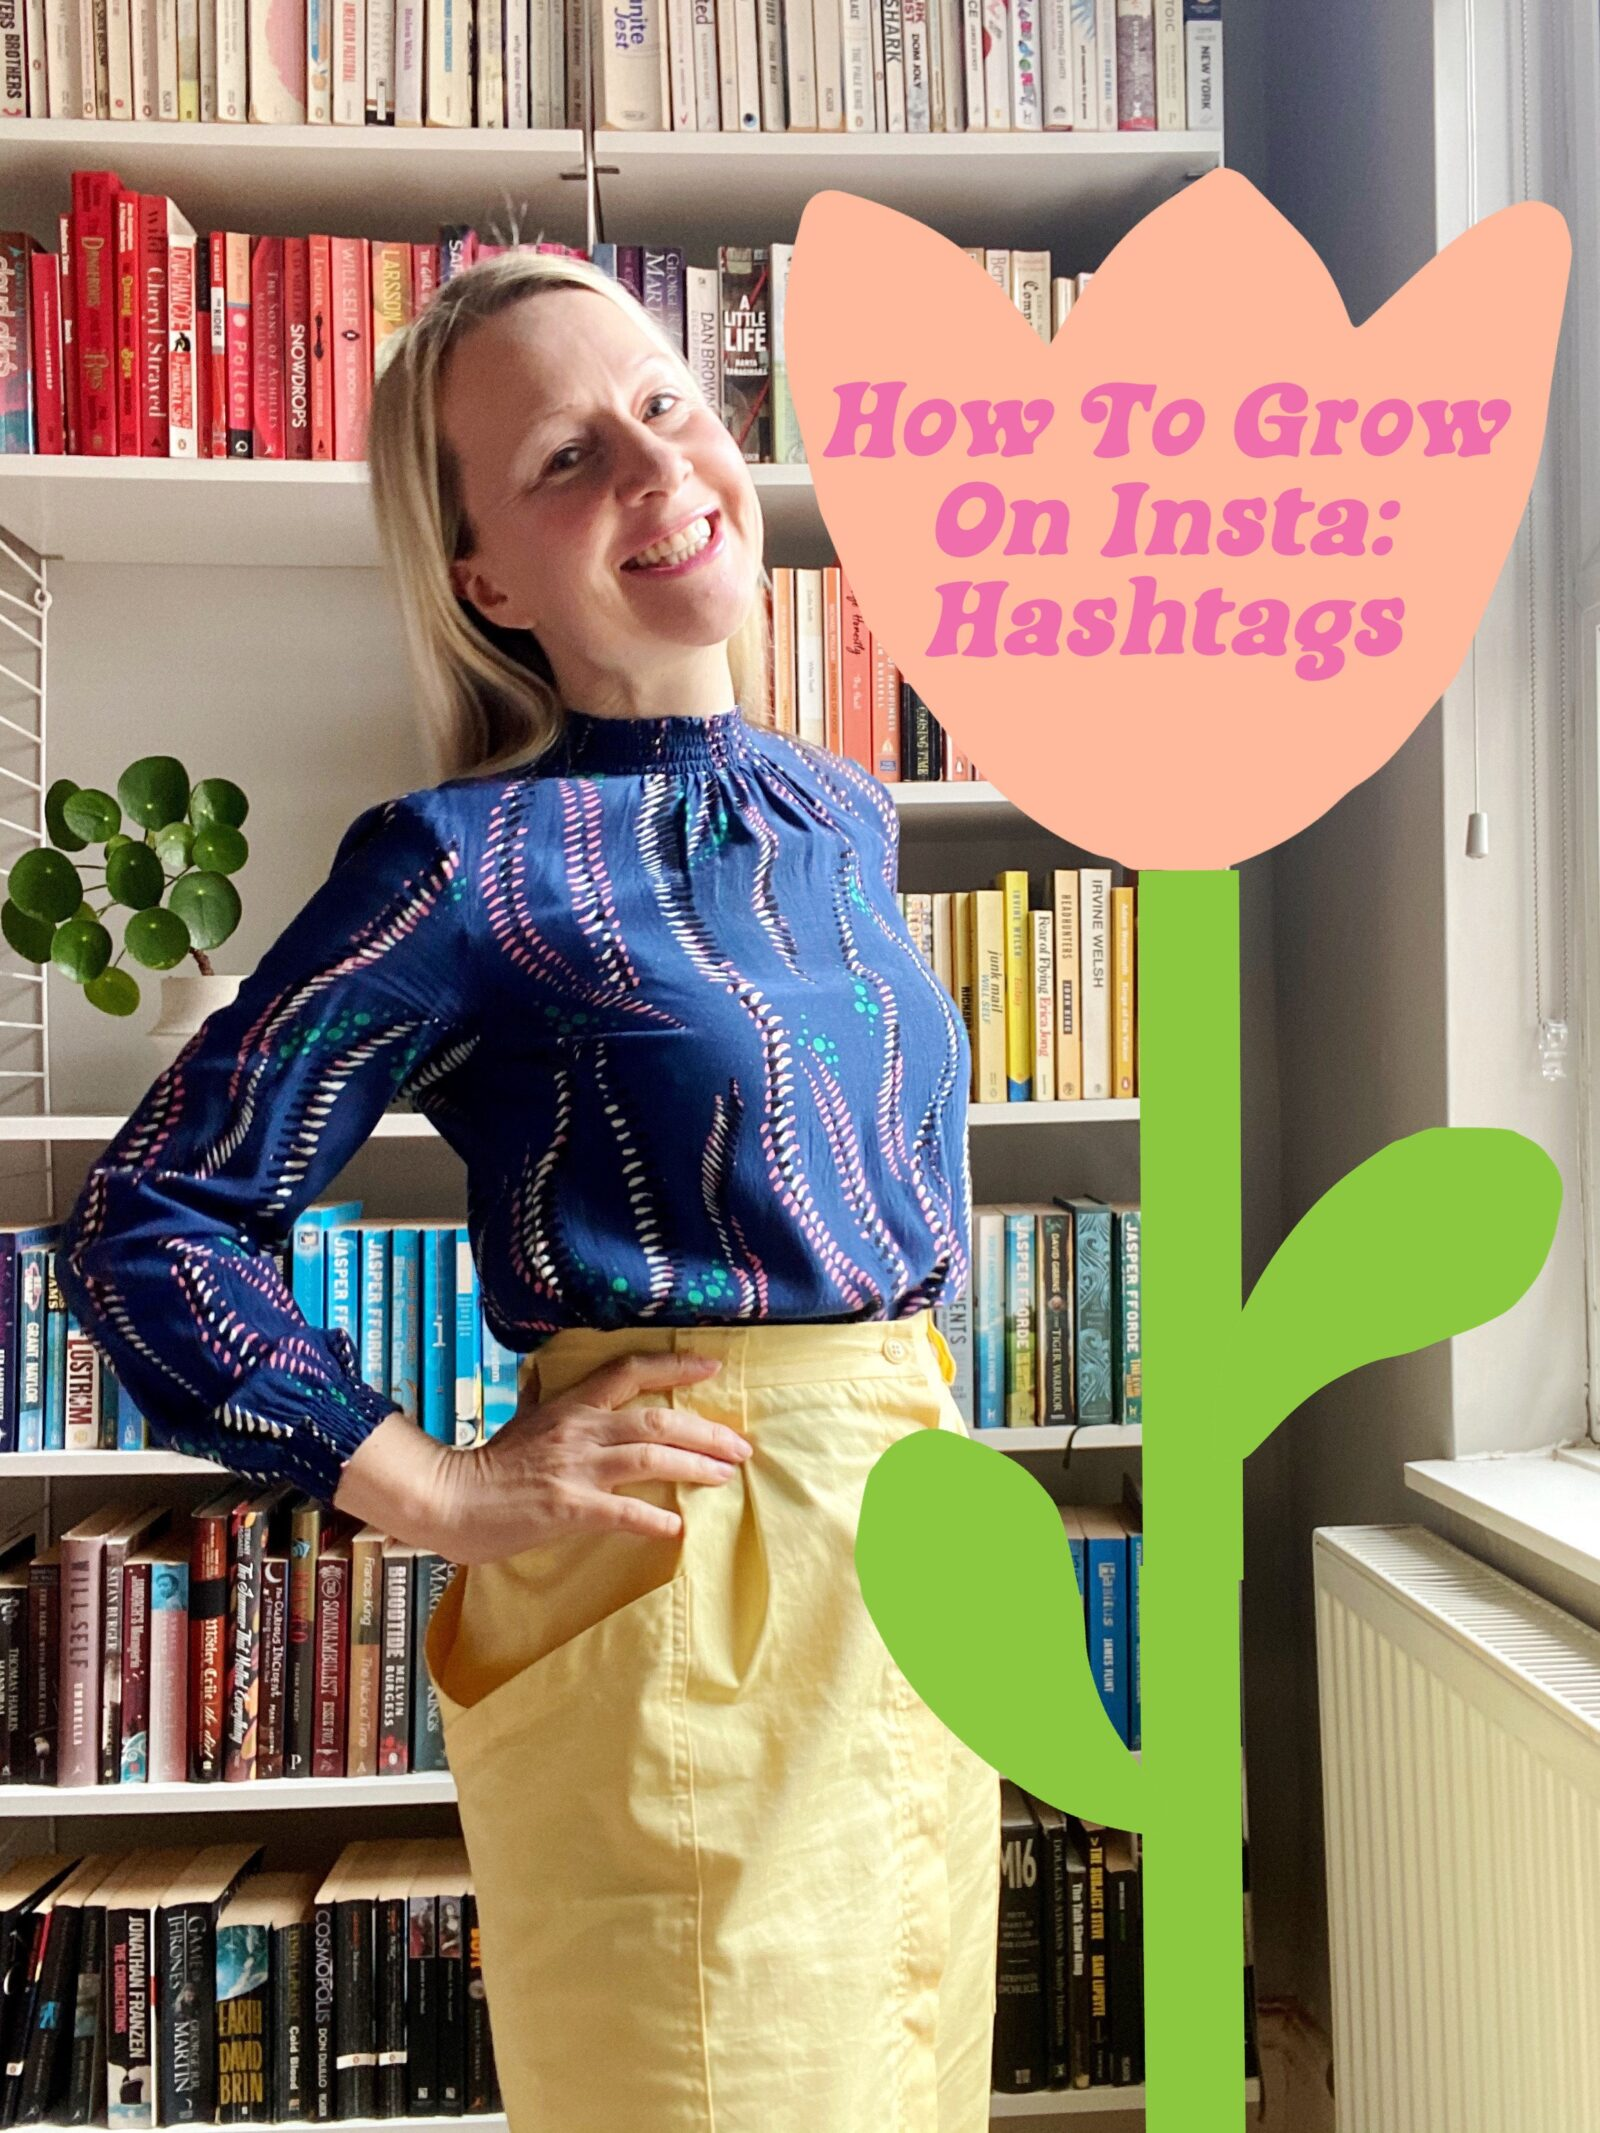 How To Grow On Instagram With Hashtags.